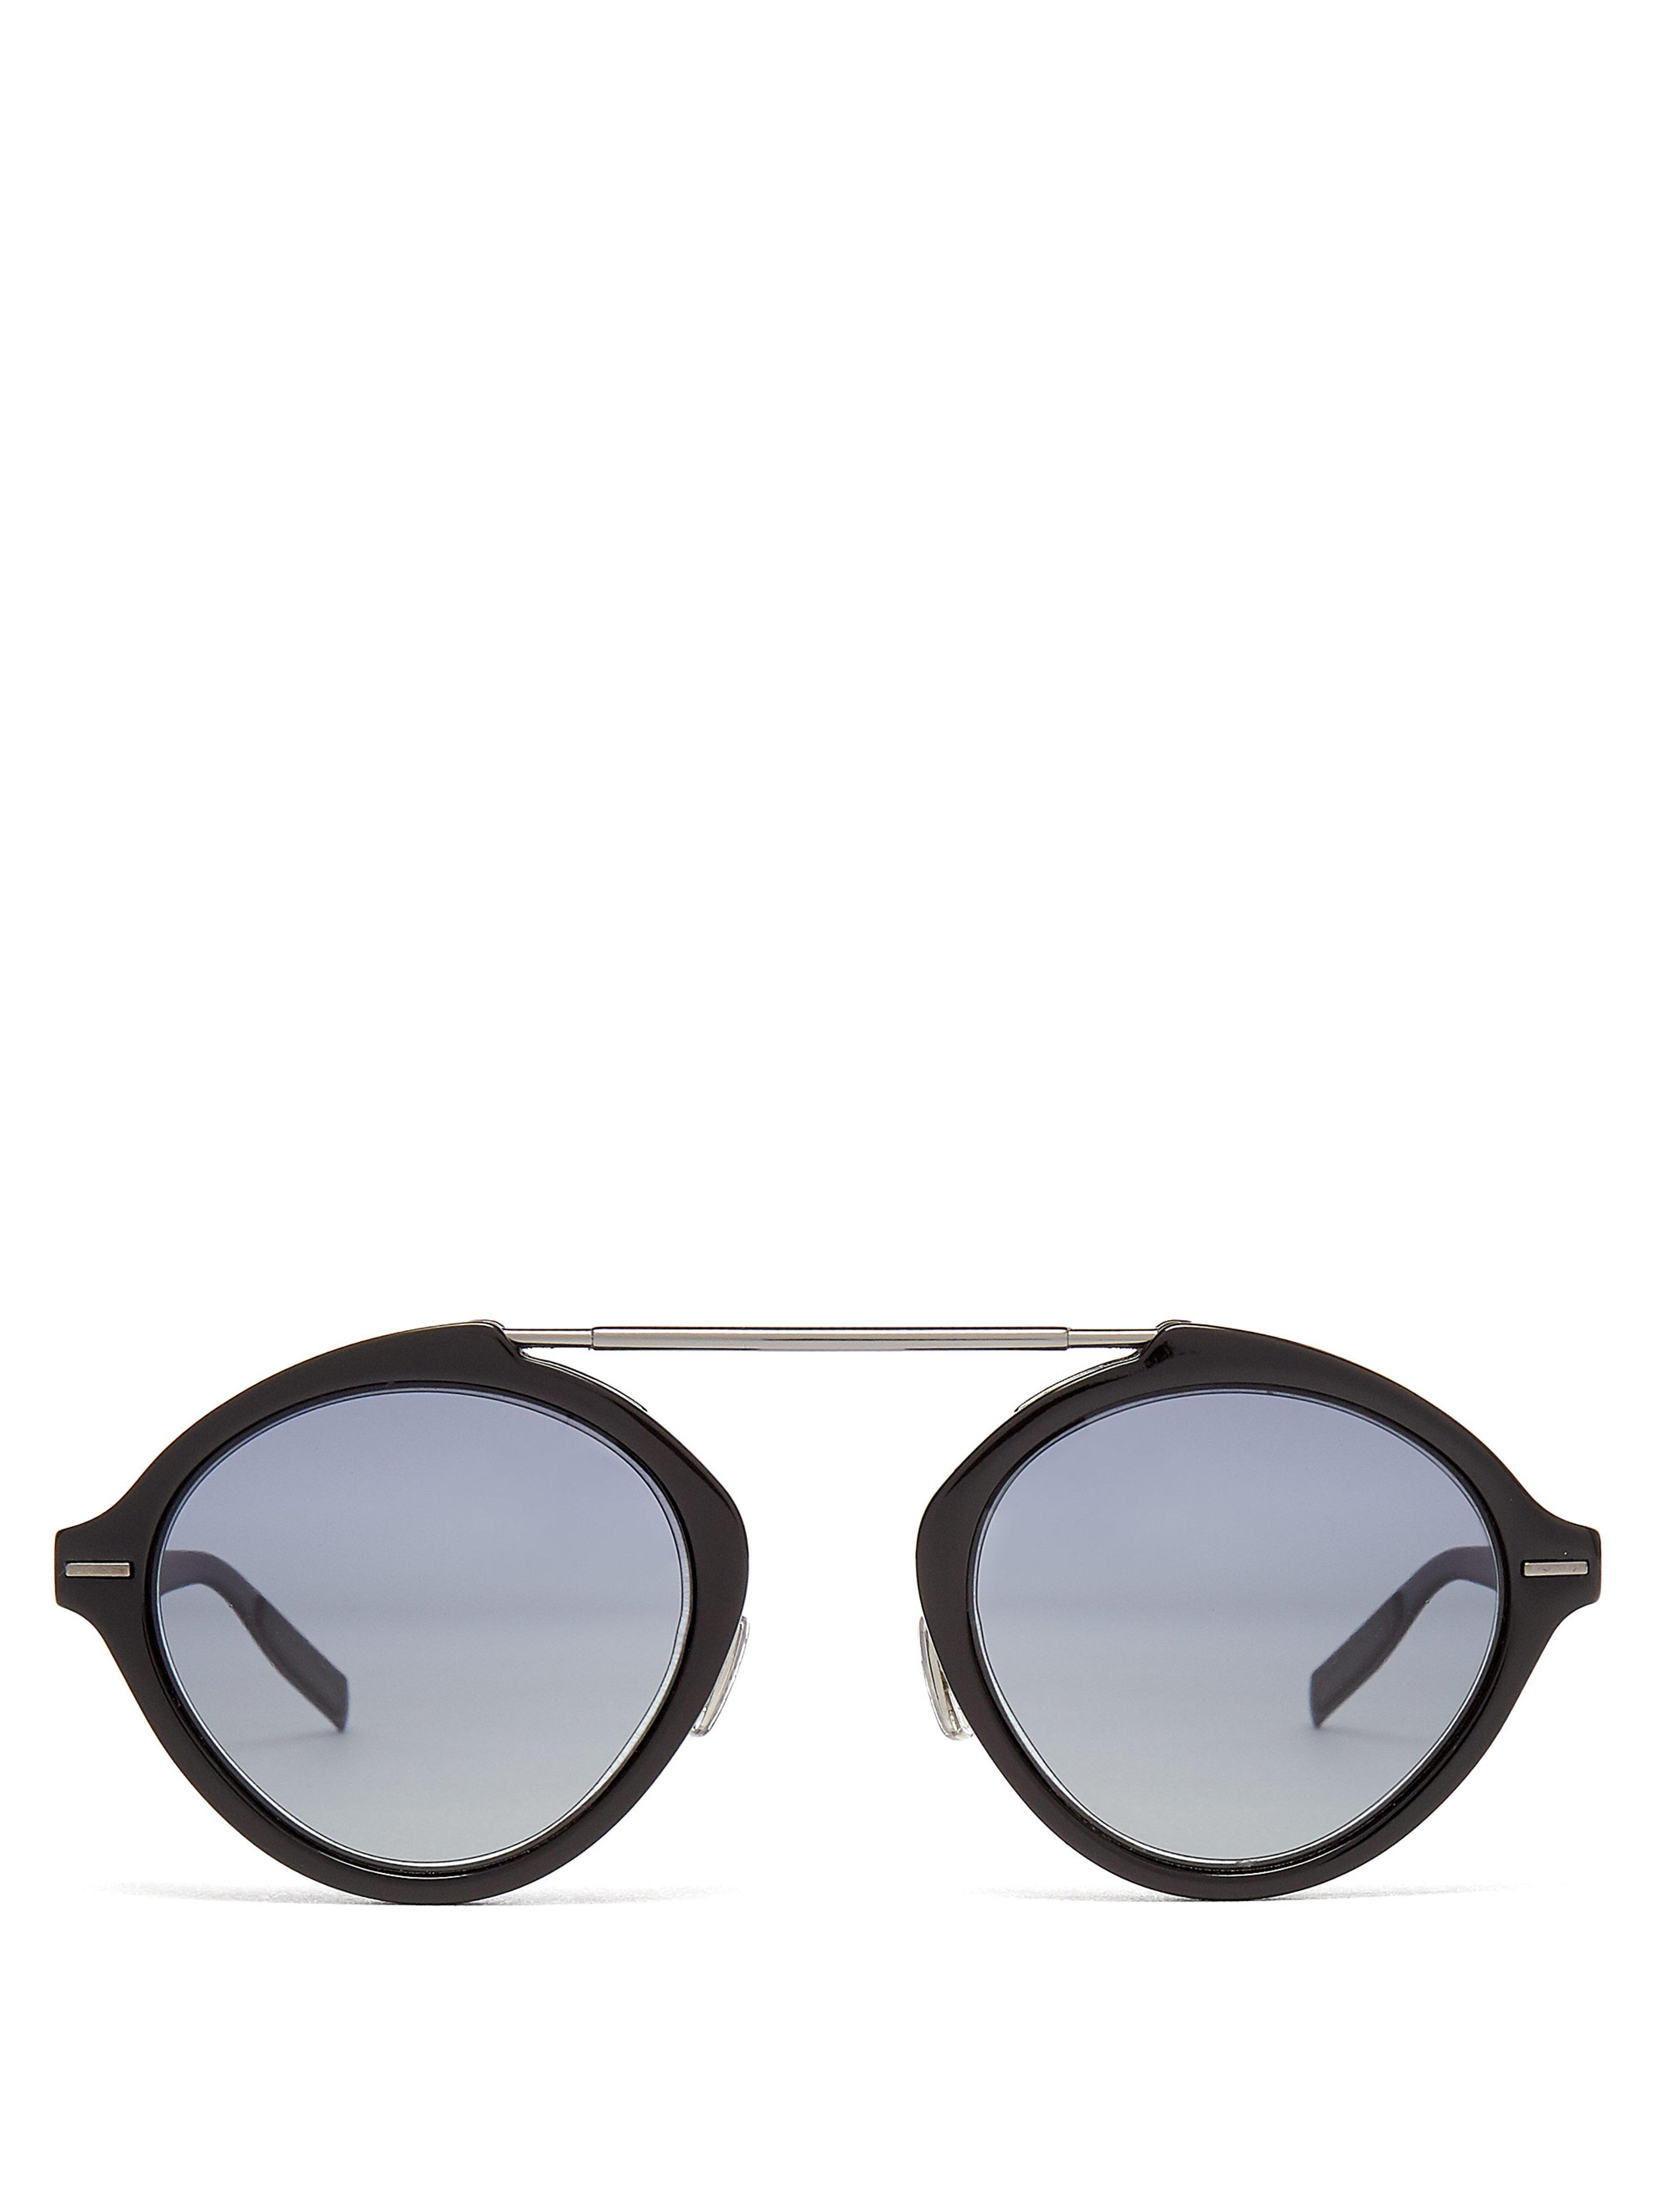 fca6e3651aff Dior Homme System Round Frame Sunglasses in Black for Men - Lyst